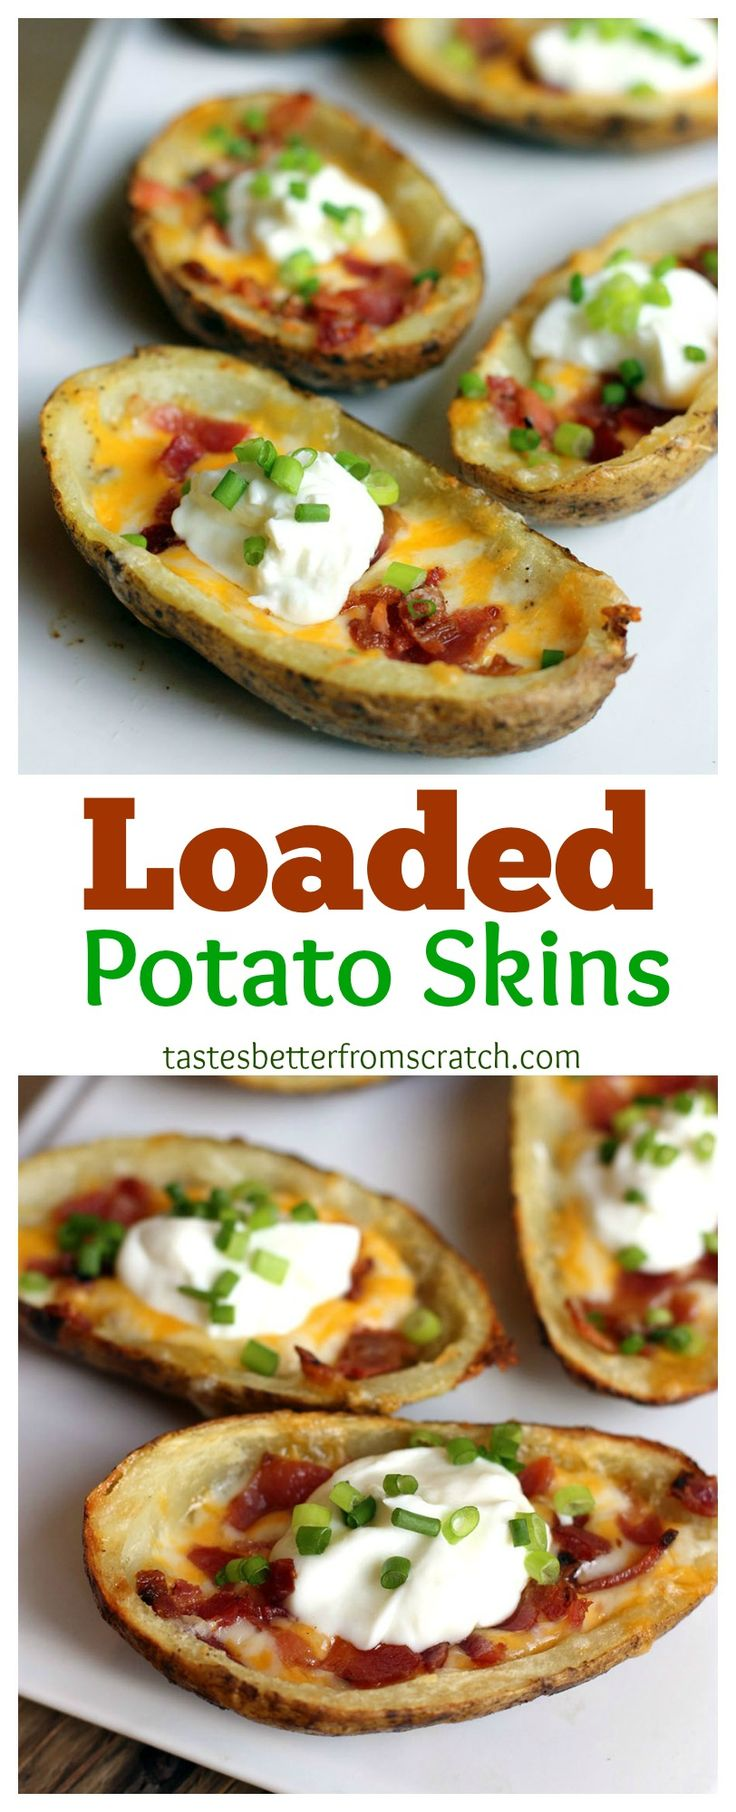 Loaded Potato Skins are my husband's all-time favorite appetizer and perfect for game day!